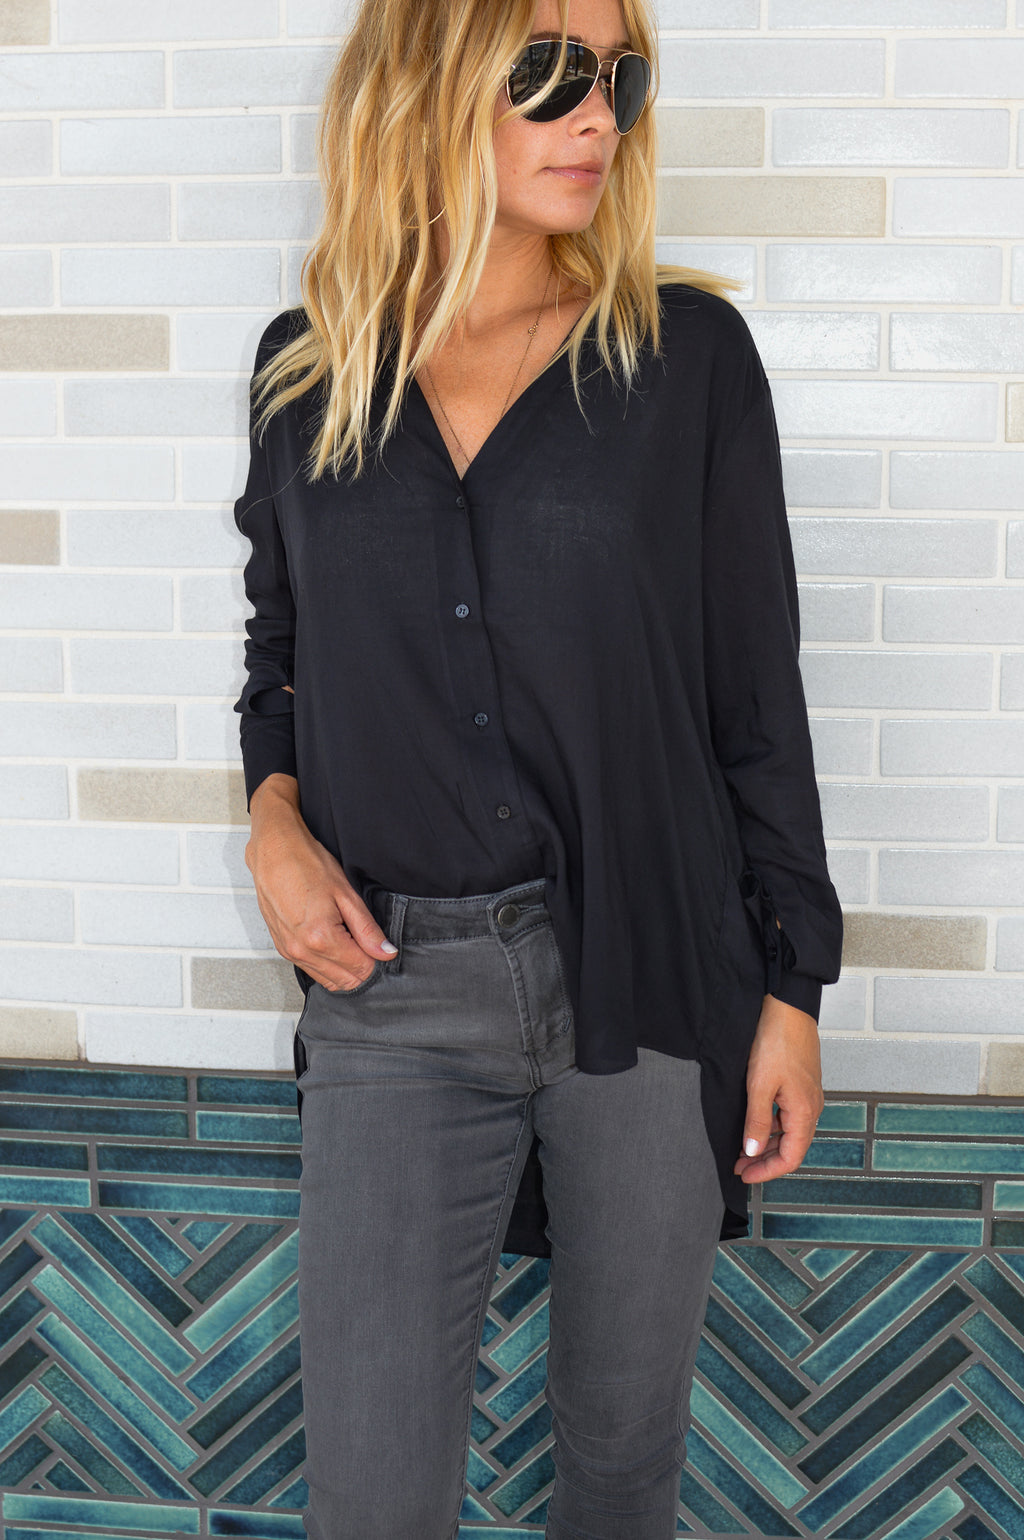 EVERYTHING BUT BASIC BUTTON DOWN TUNIC TOP